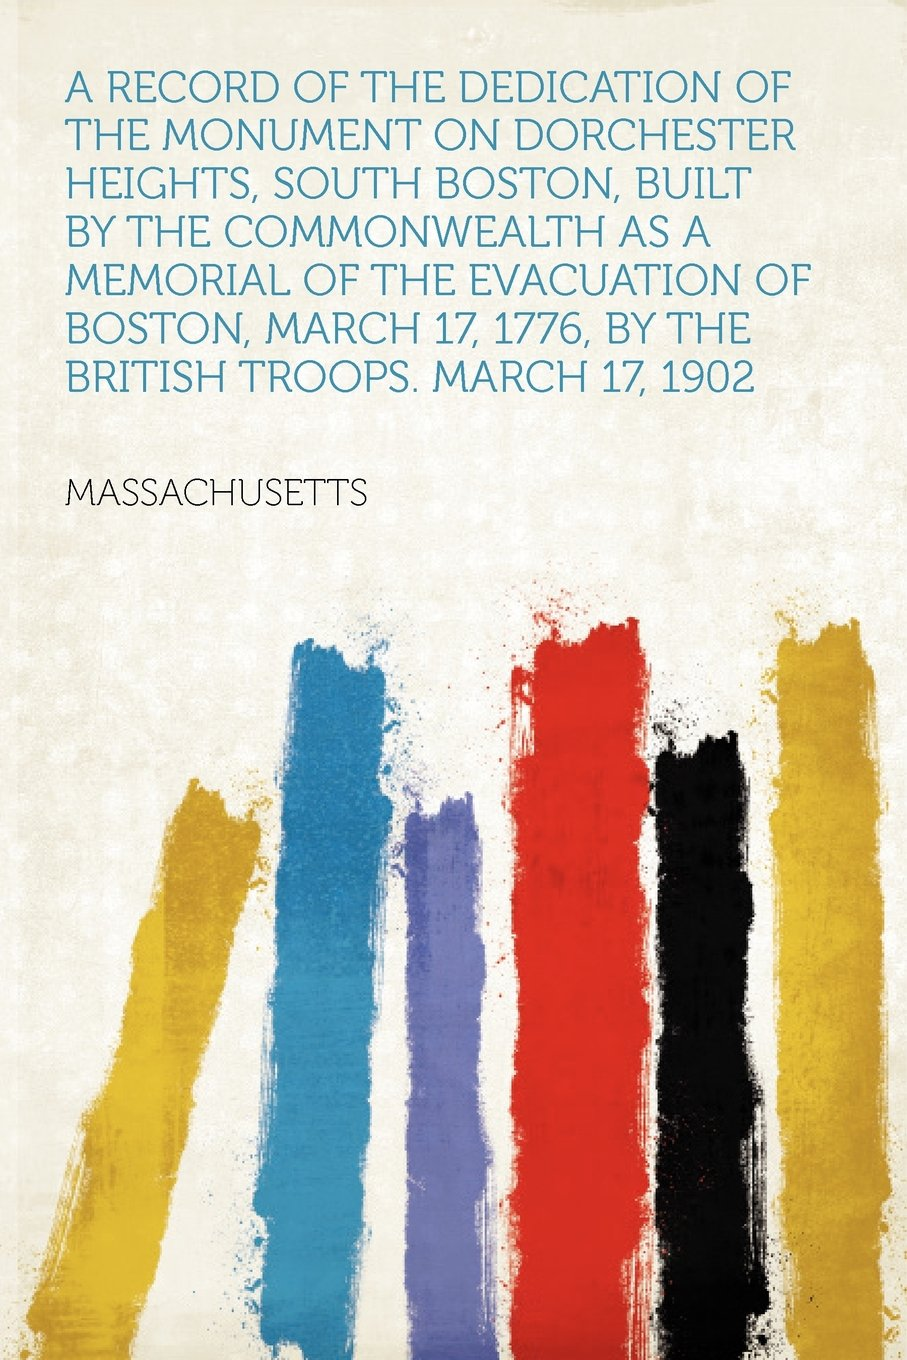 A Record of the Dedication of the Monument on Dorchester Heights, South Boston, Built by the Commonwealth as a Memorial of the Evacuation of Boston, ... 1776, by the British Troops. March 17, 1902 PDF